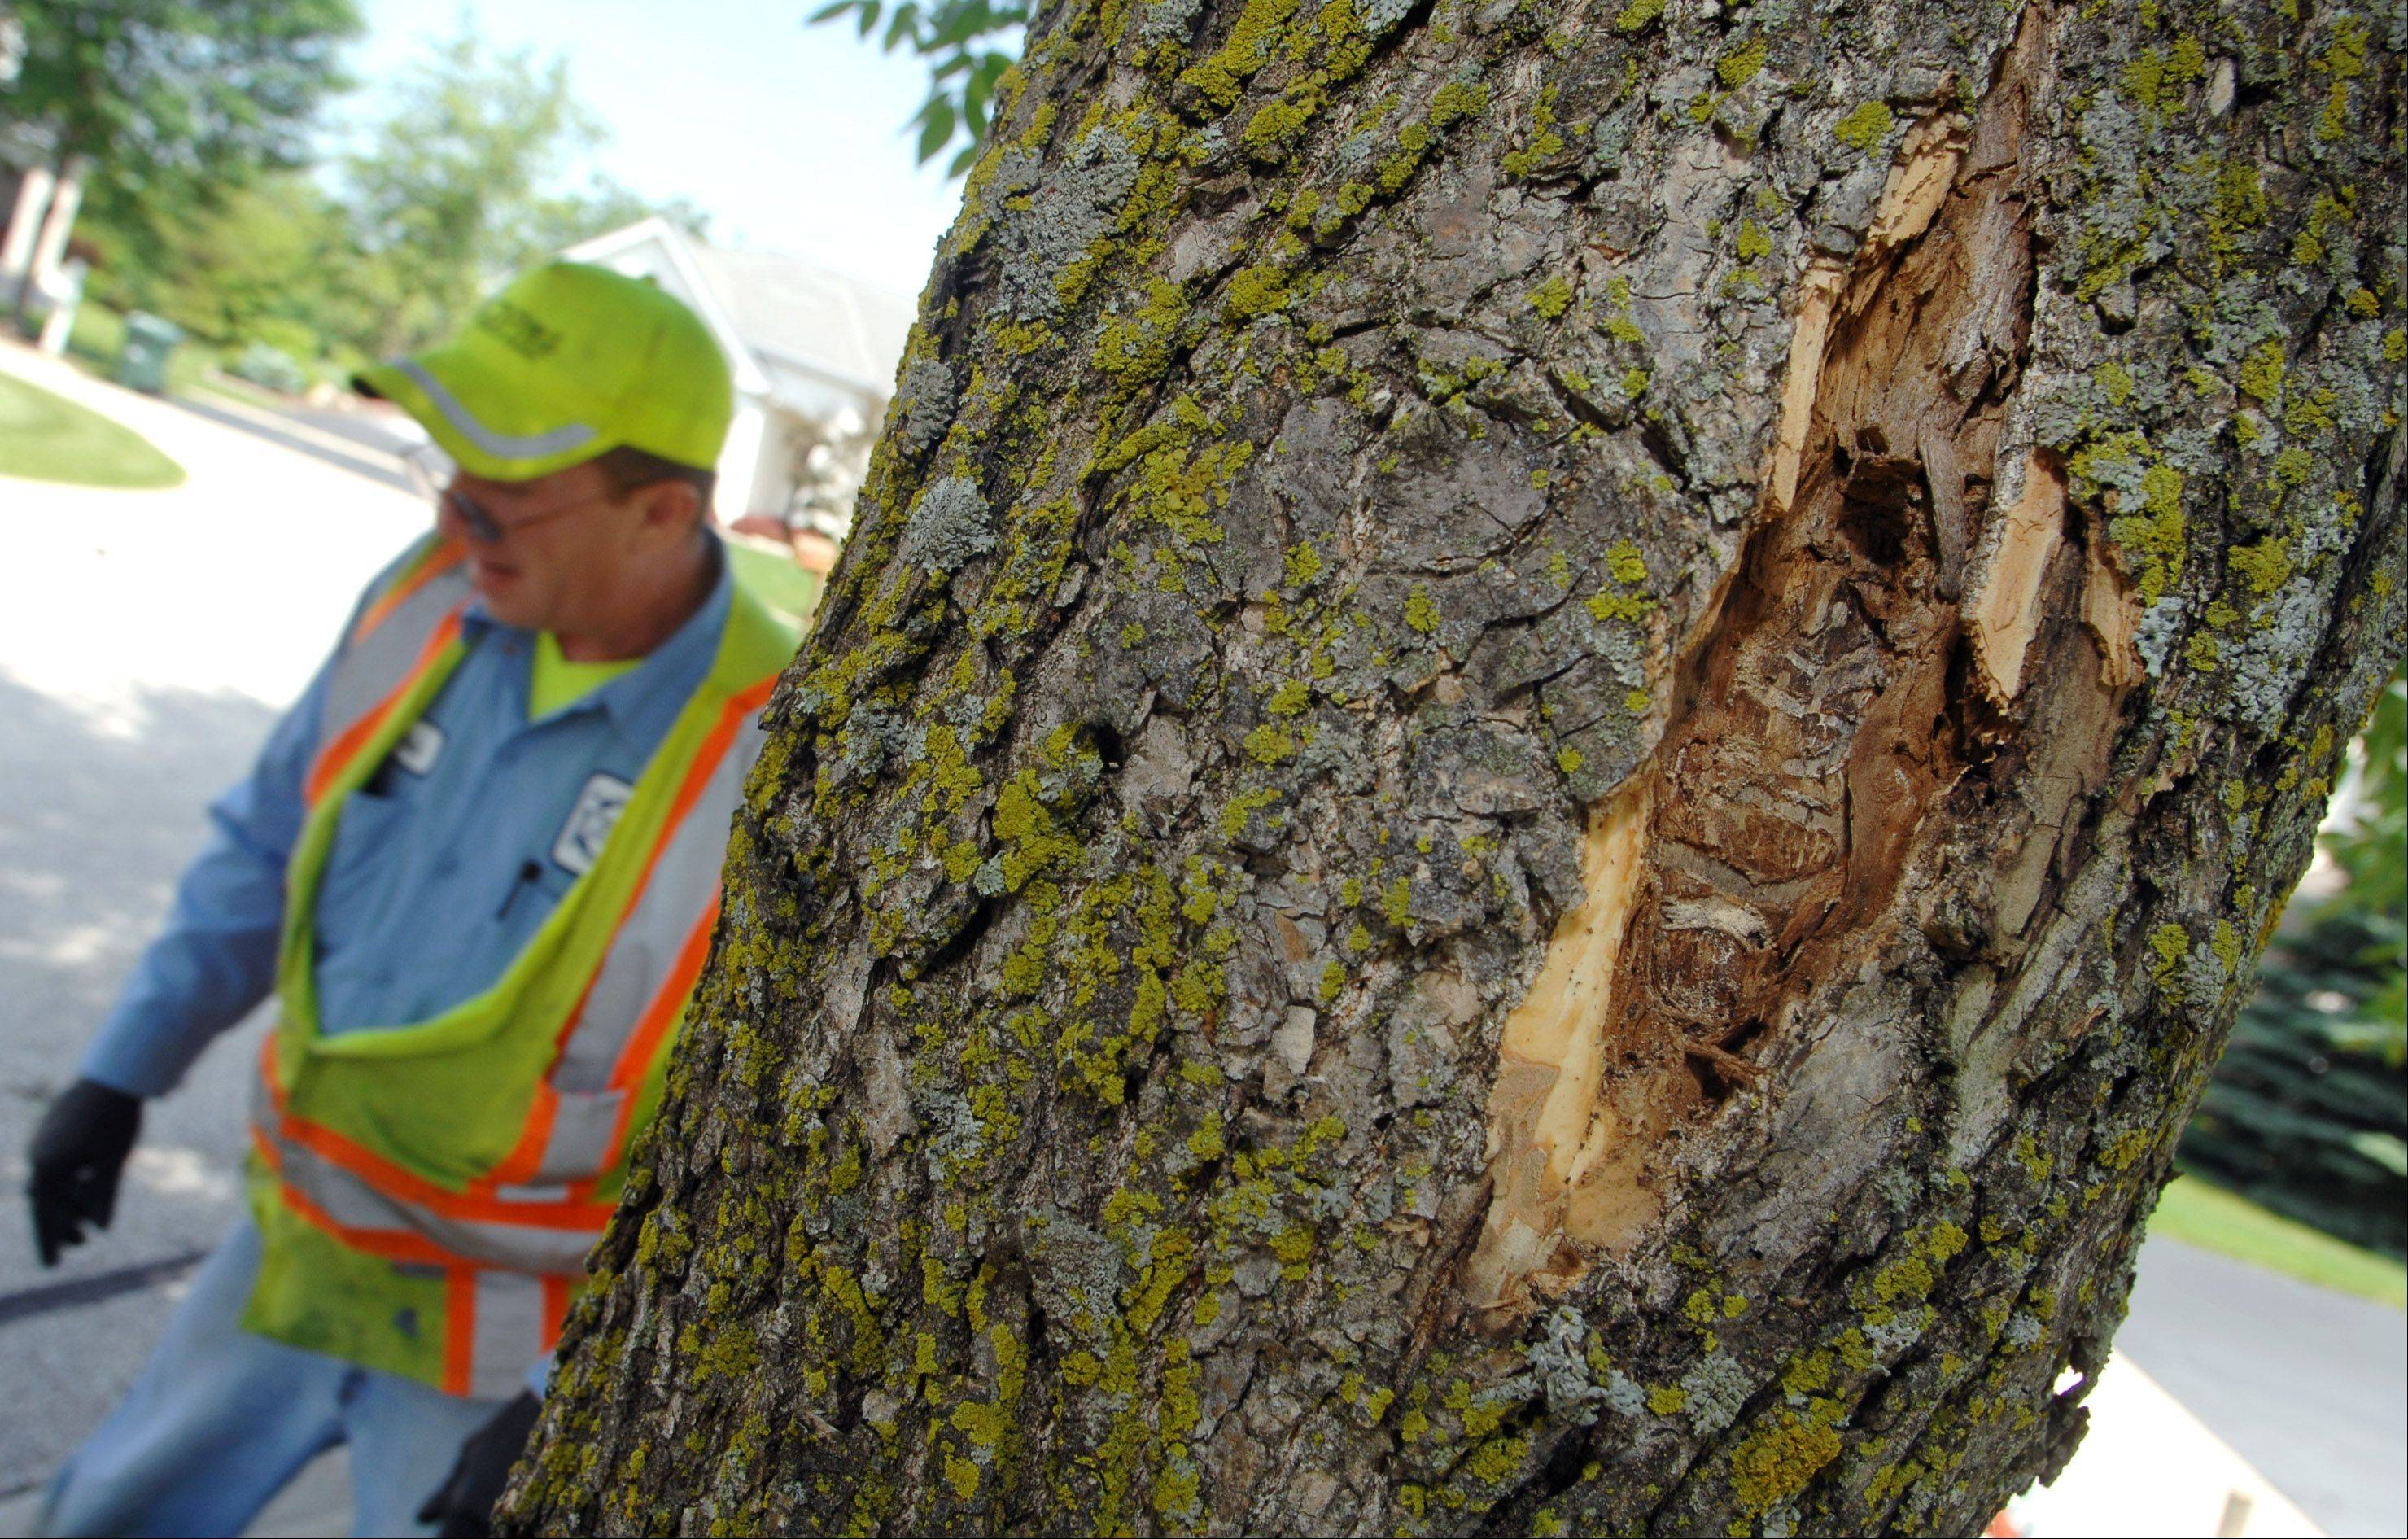 This tree on Bellview Court in Gurnee shows signs of damage from the emerald ash borer. Crews from Gurnee Public Works forestry department use an insecticide to try to save public parkway ash trees in the Steeple Pointe subdivision Friday morning.